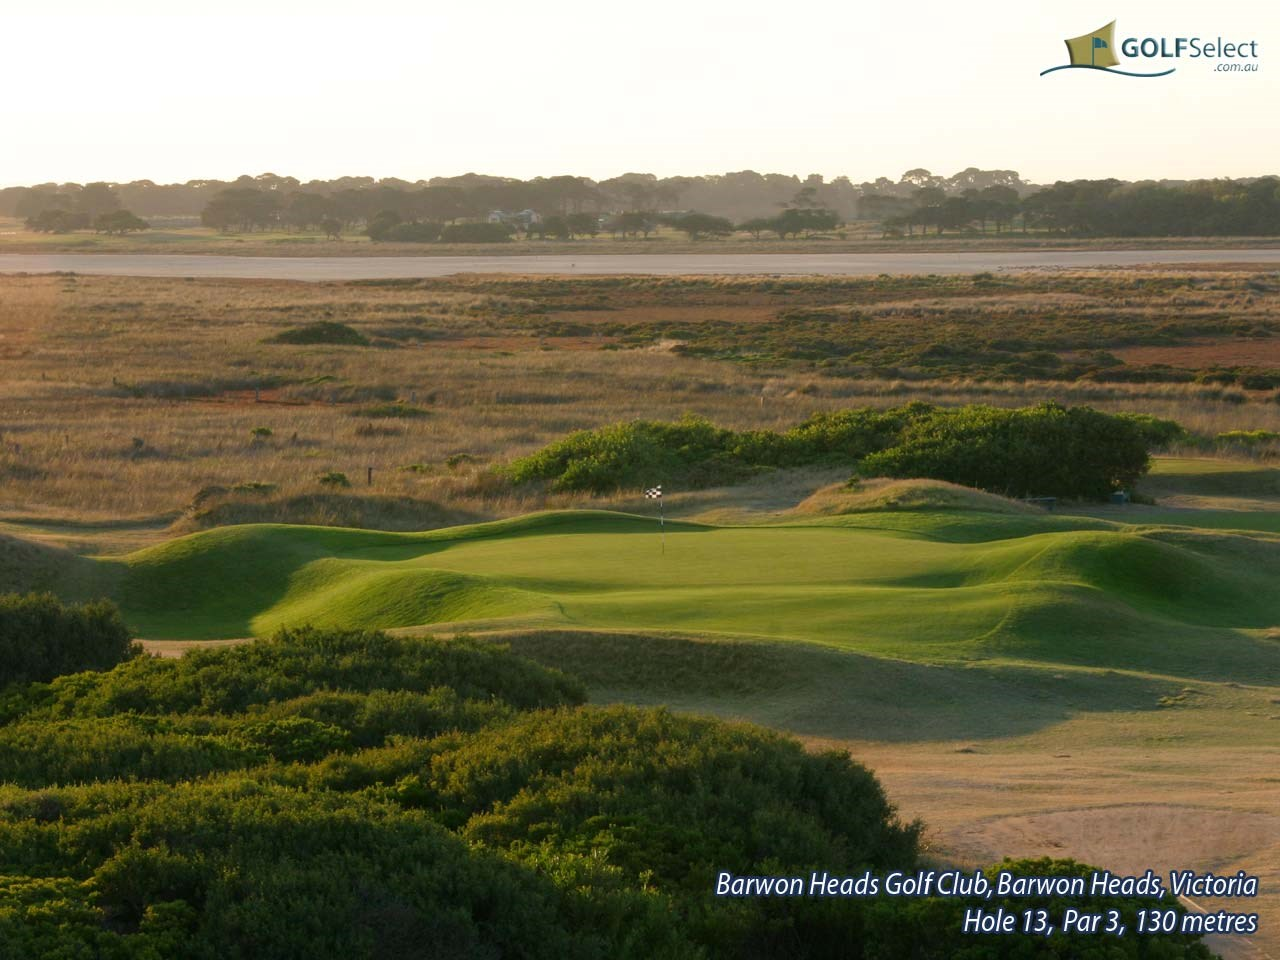 Barwon Heads Golf Club Hole 13, Par 3, 130 metres